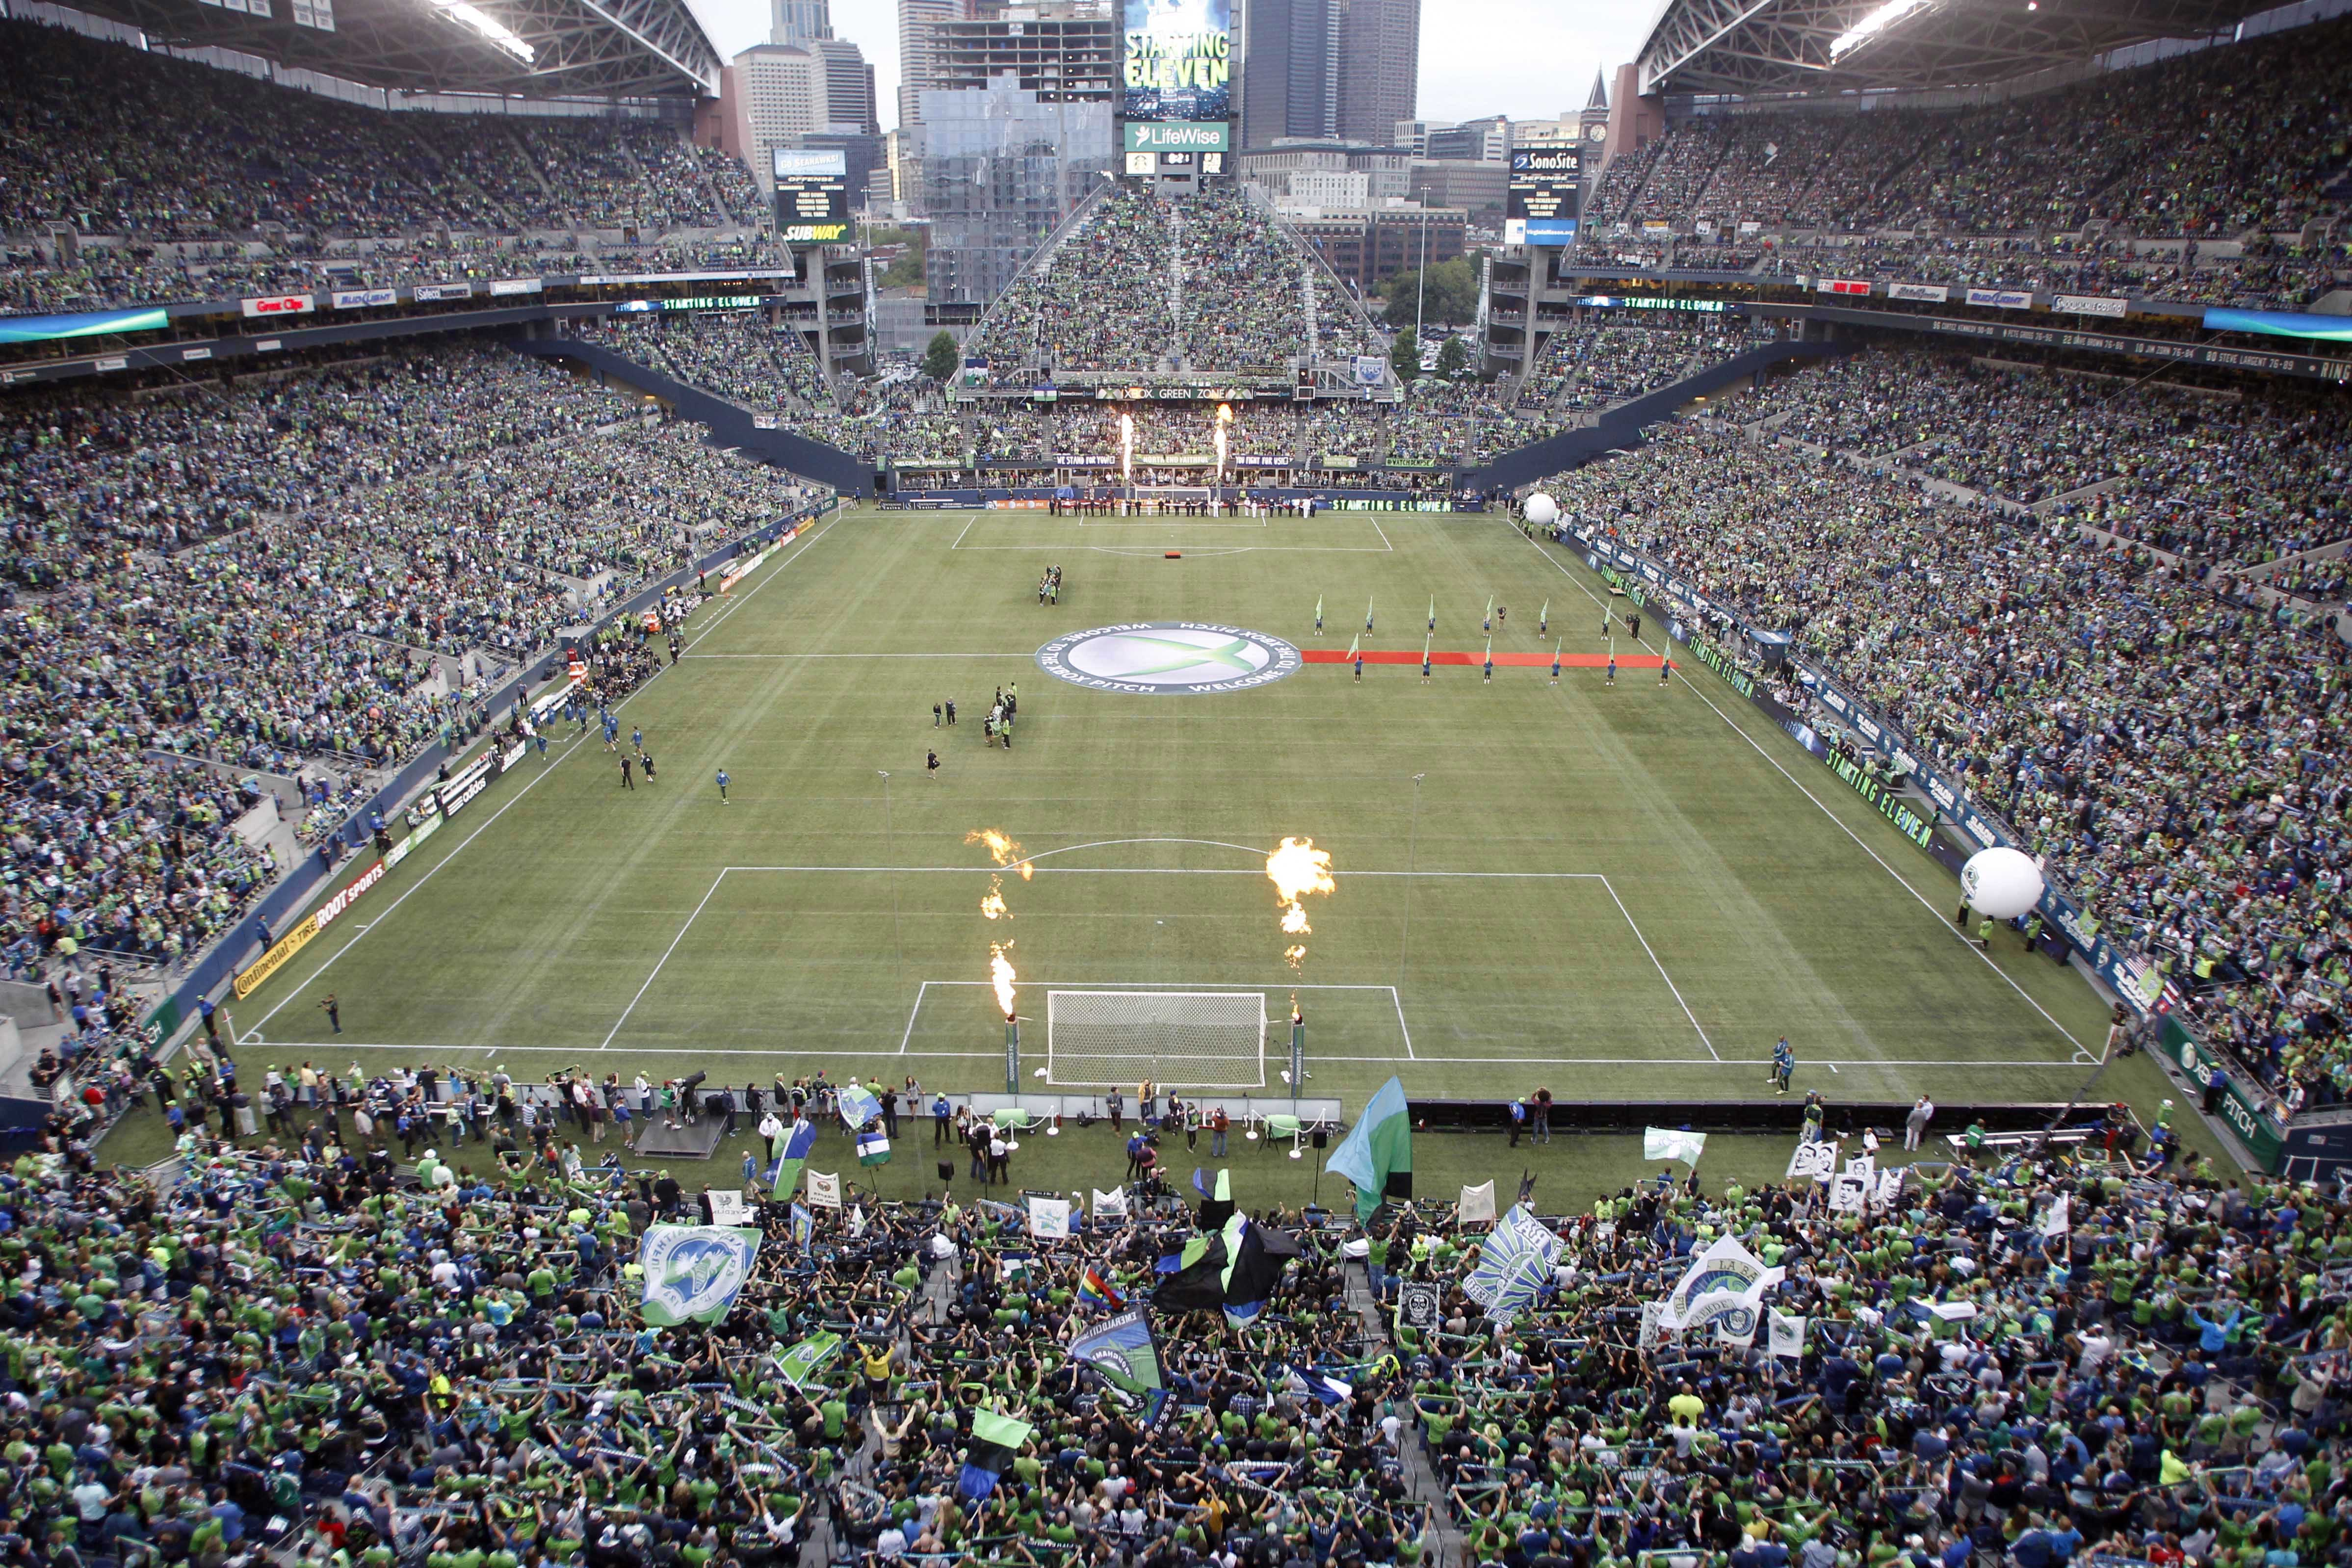 The conference finals are an MLS dream come true